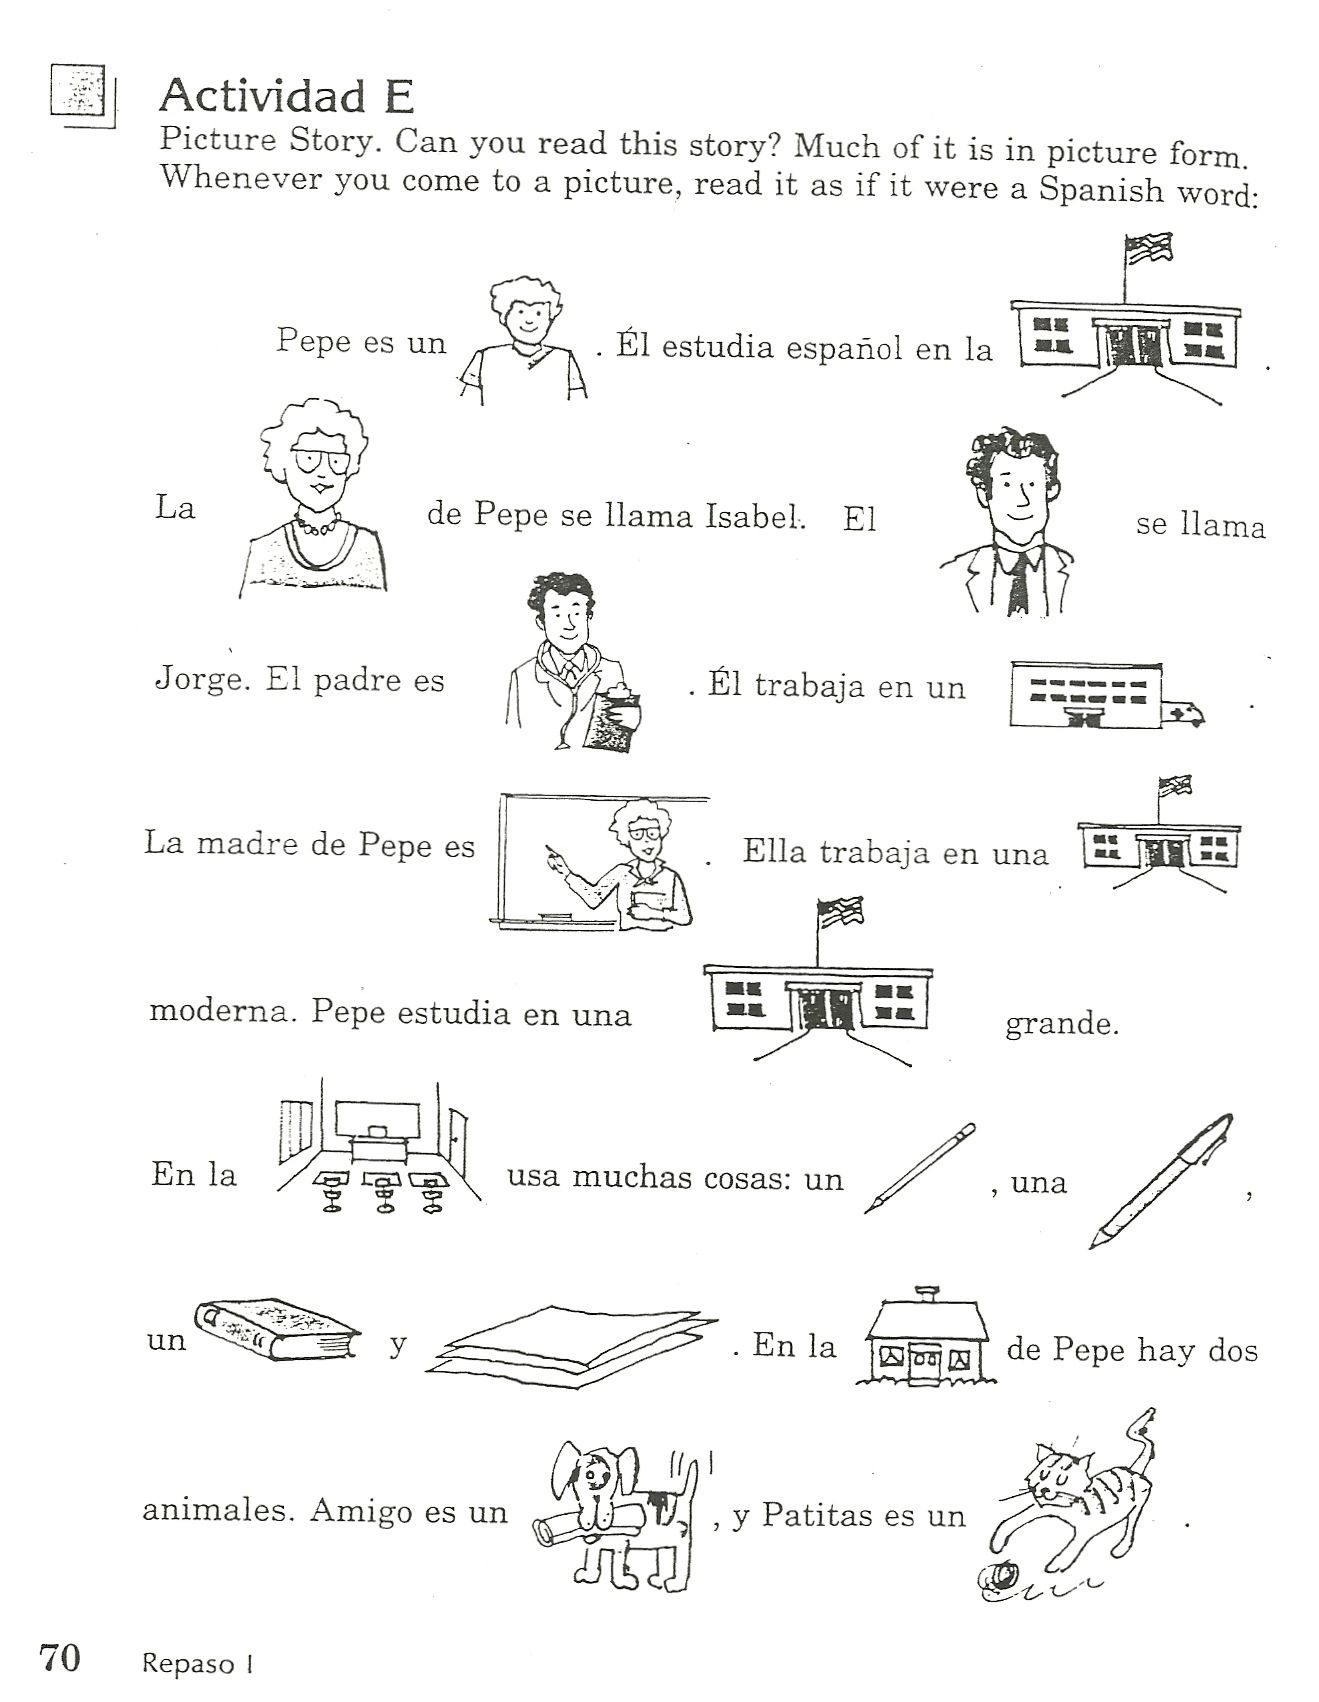 Spanish Picture Story